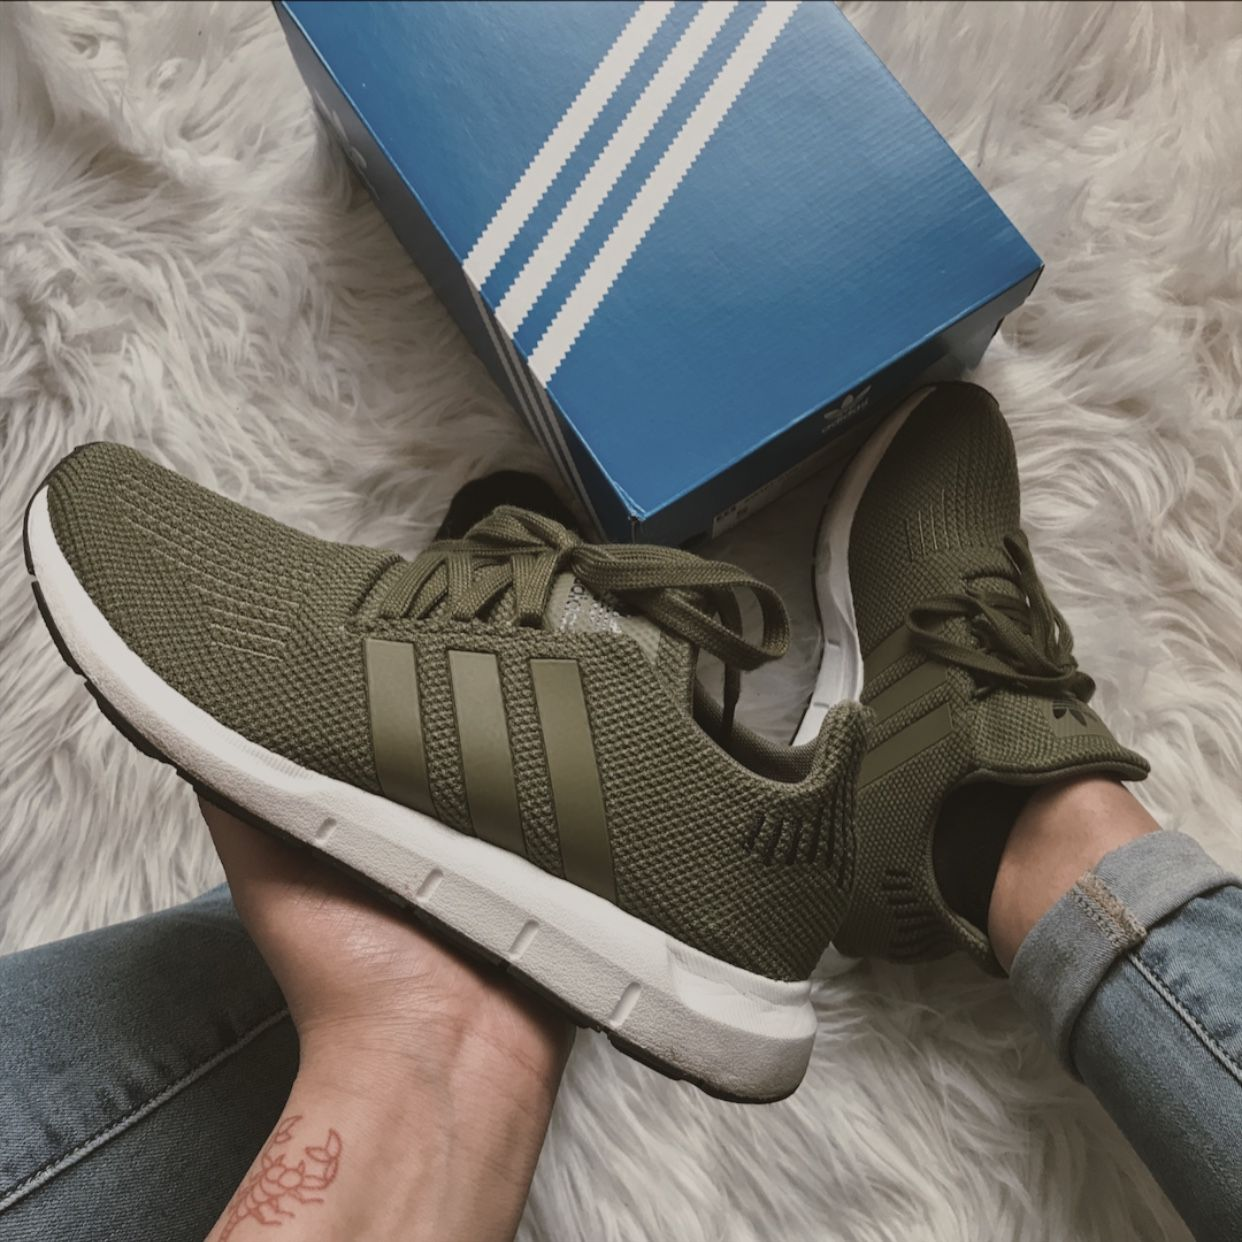 outdated unico clic  Adidas Swift Run | Olive green shoes, Green addidas shoes, Olive green  sneakers